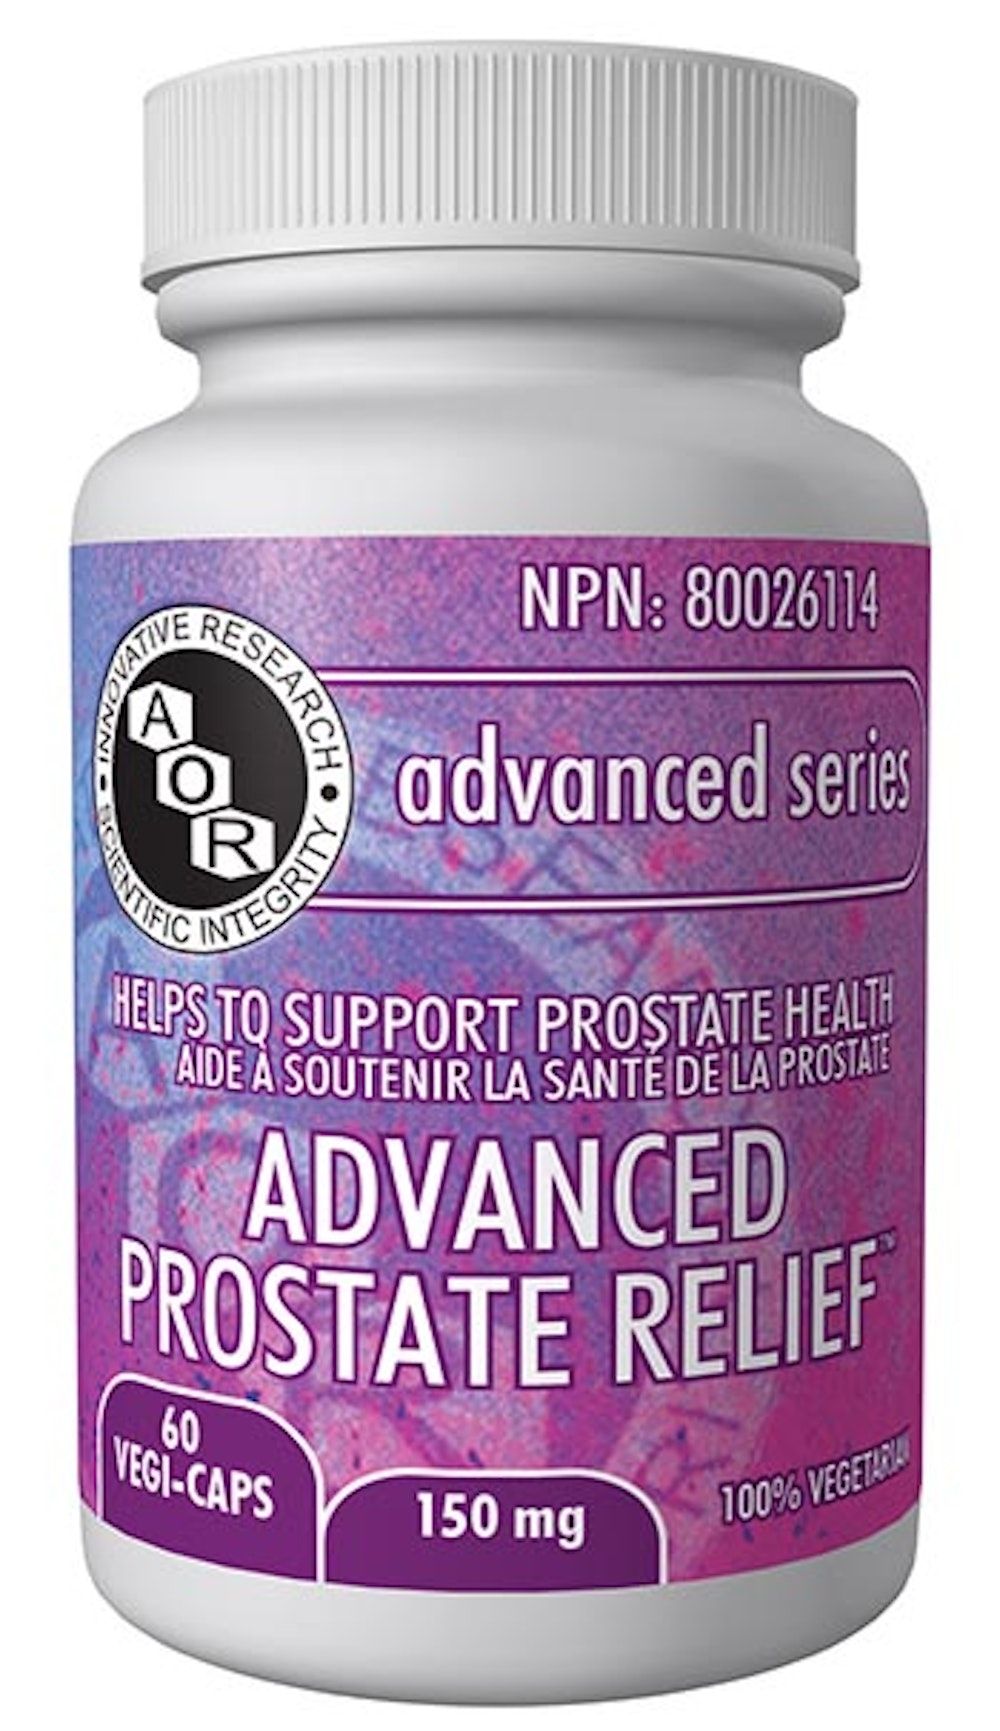 Advanced Prostate Relief